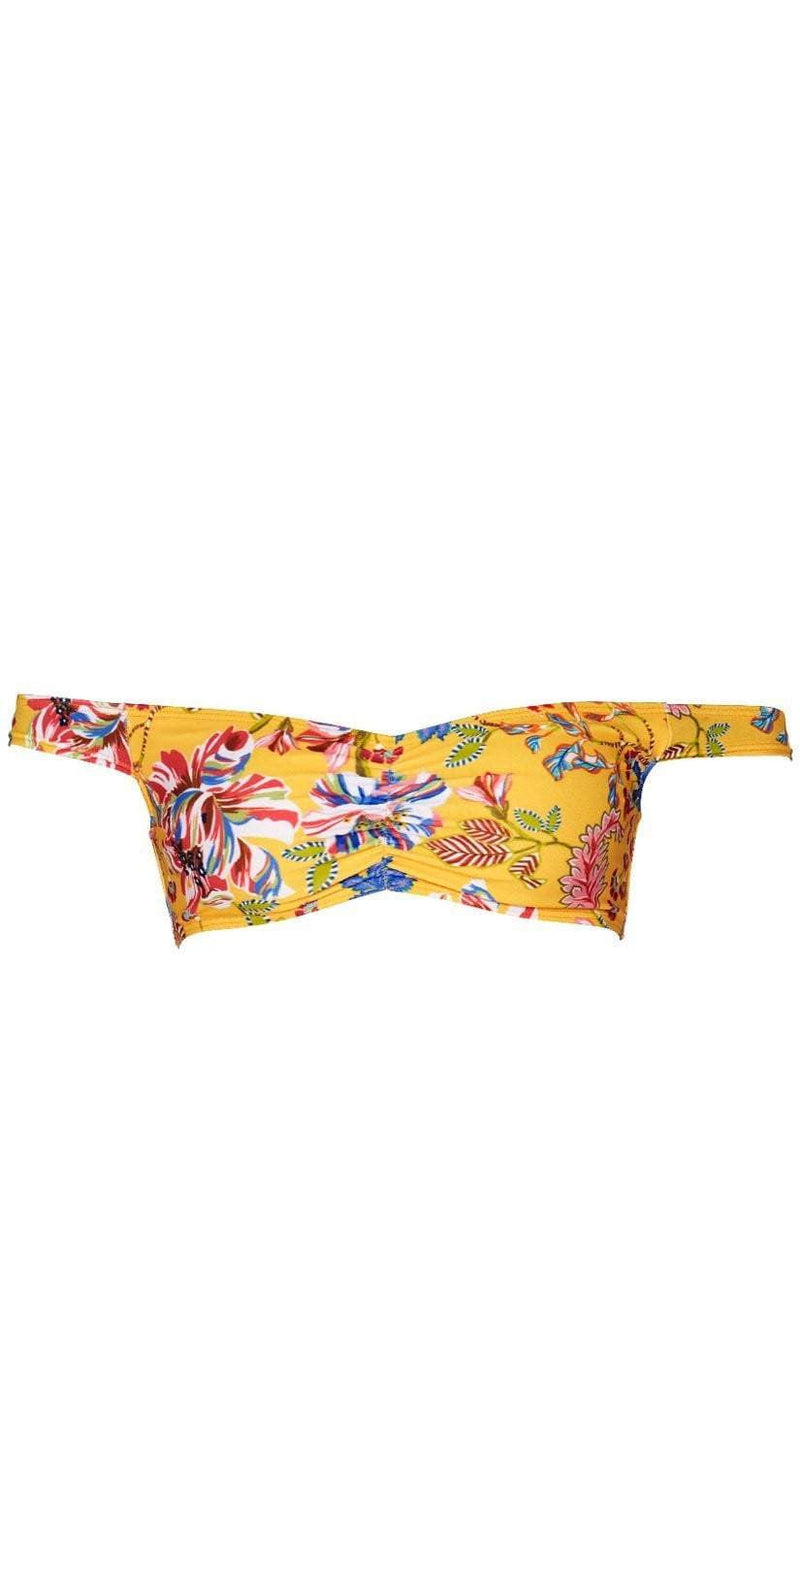 L Space Pacific Bloom Ziggy Top in Sunshine Gold PBZGT18-SUG: